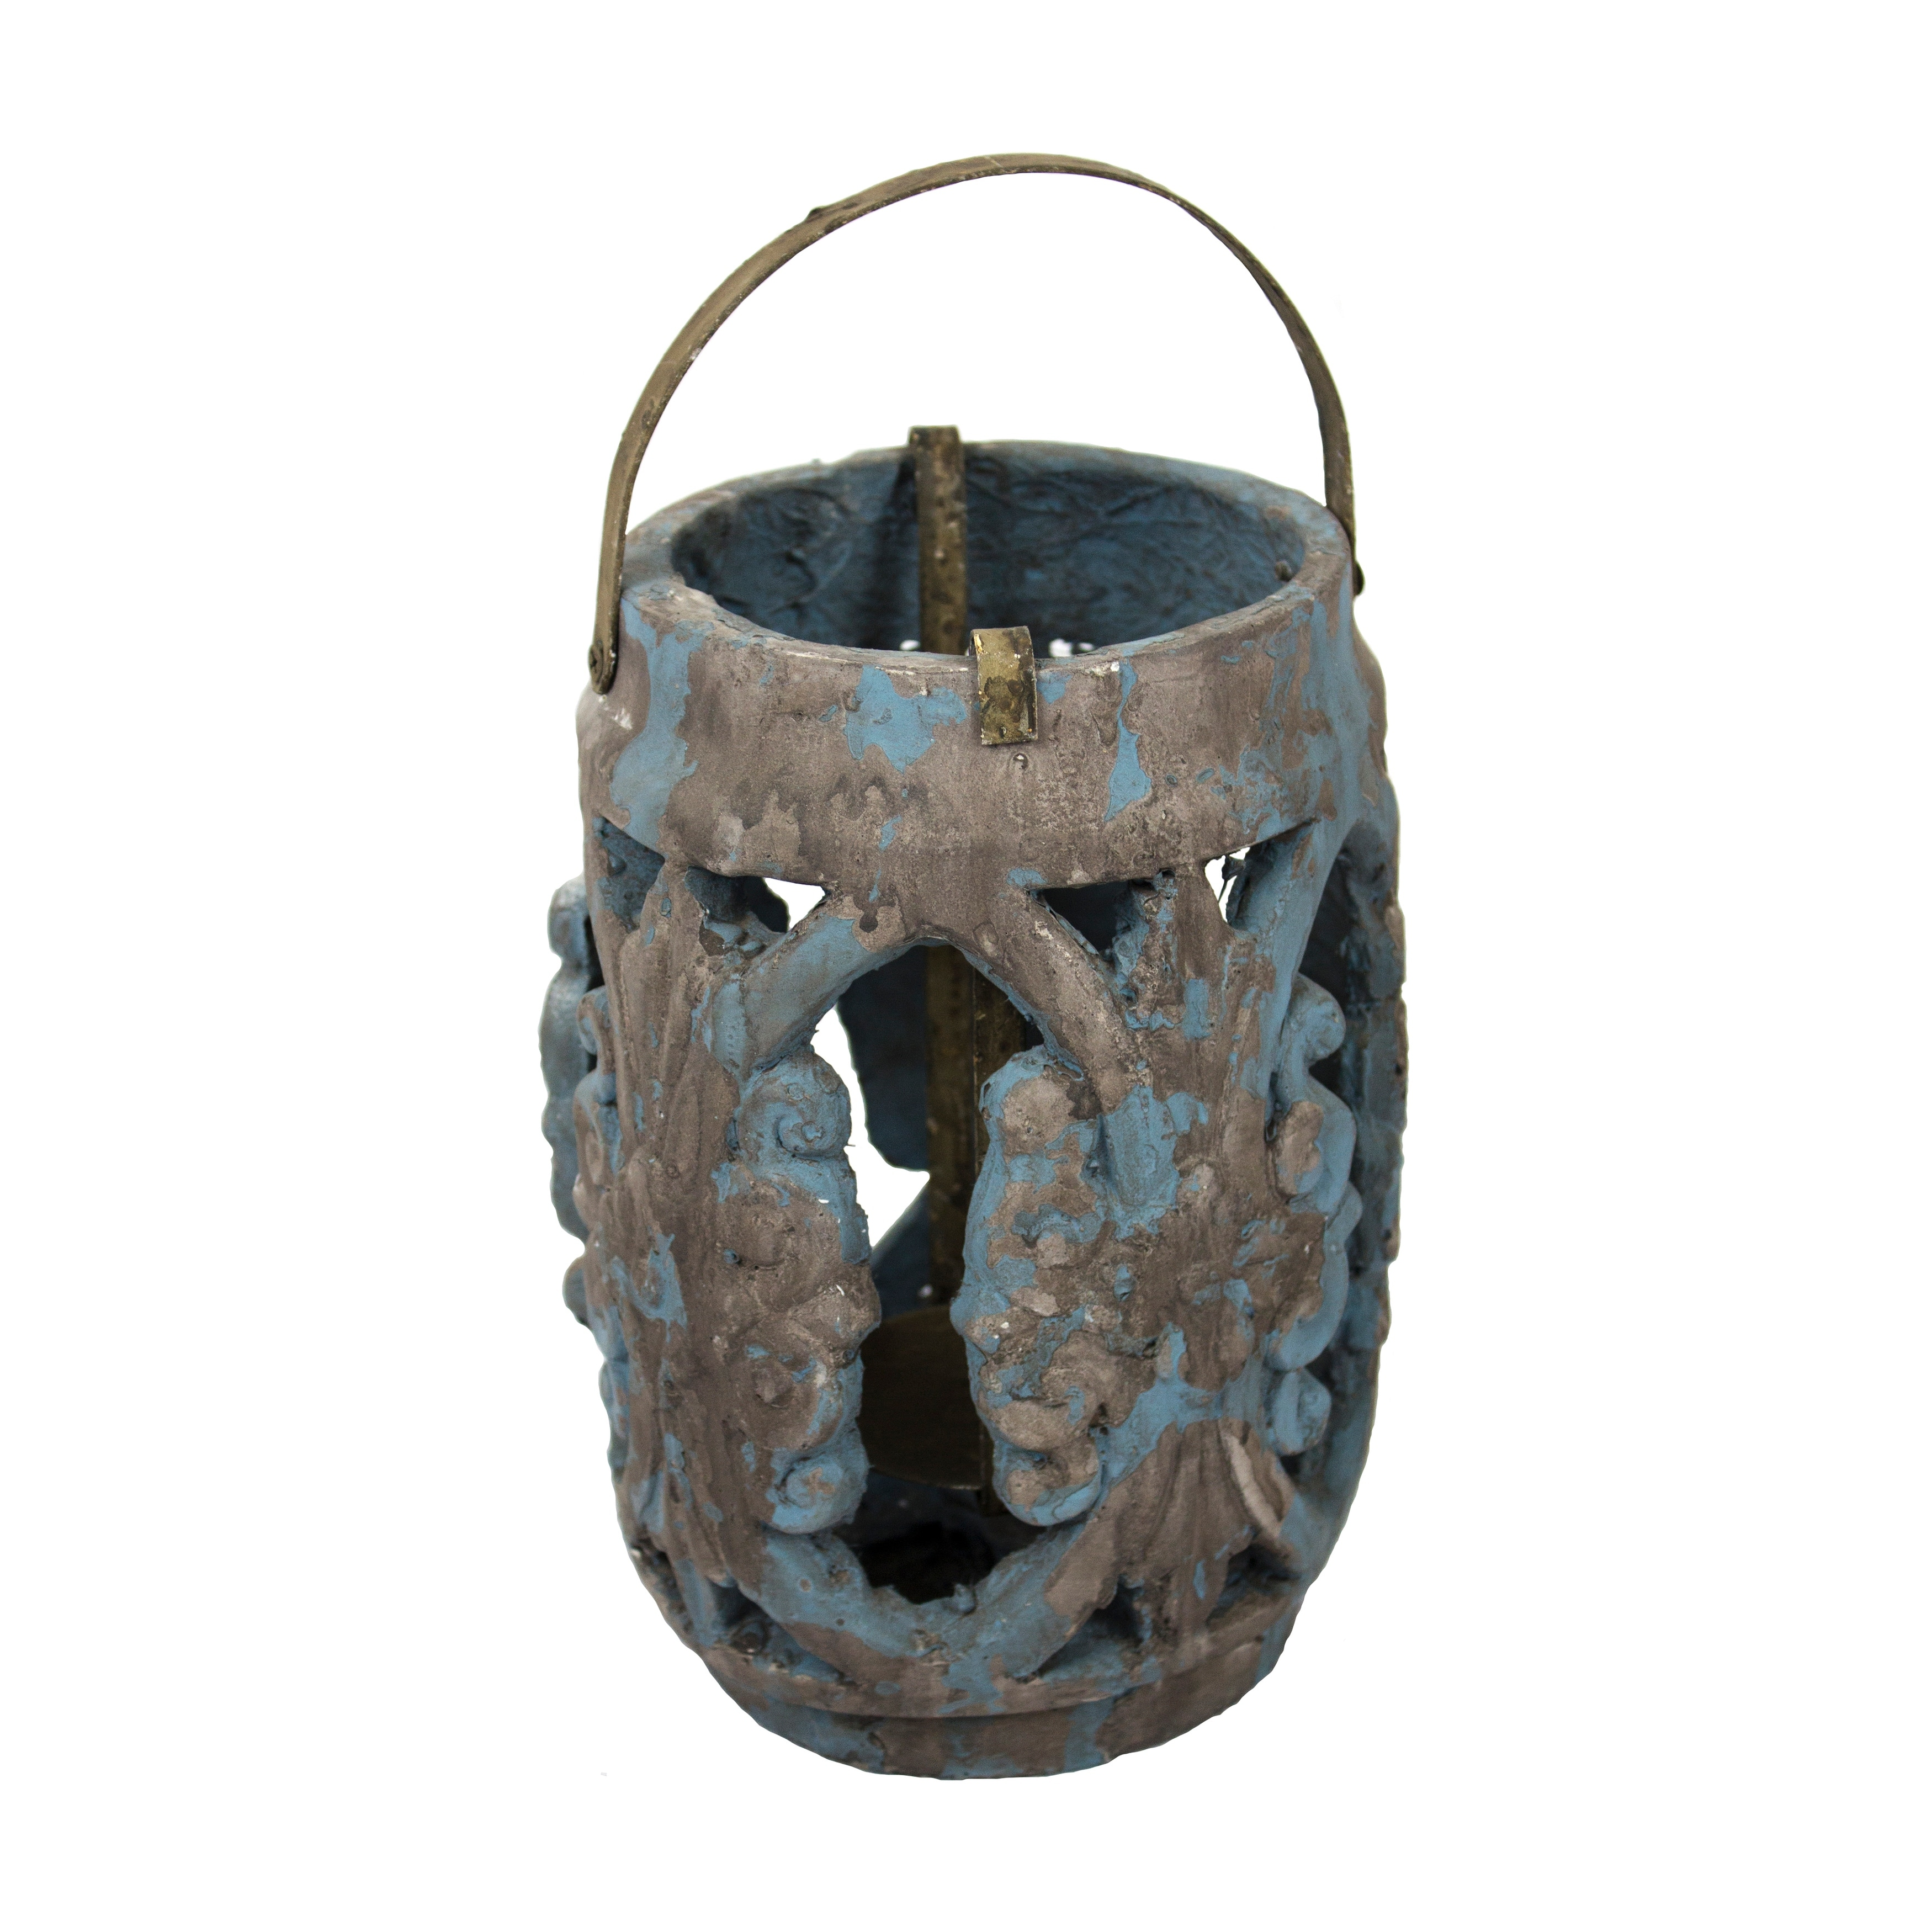 Cement Carved Lantern Candle Holder with Attached Handle, Small, Antique Blue